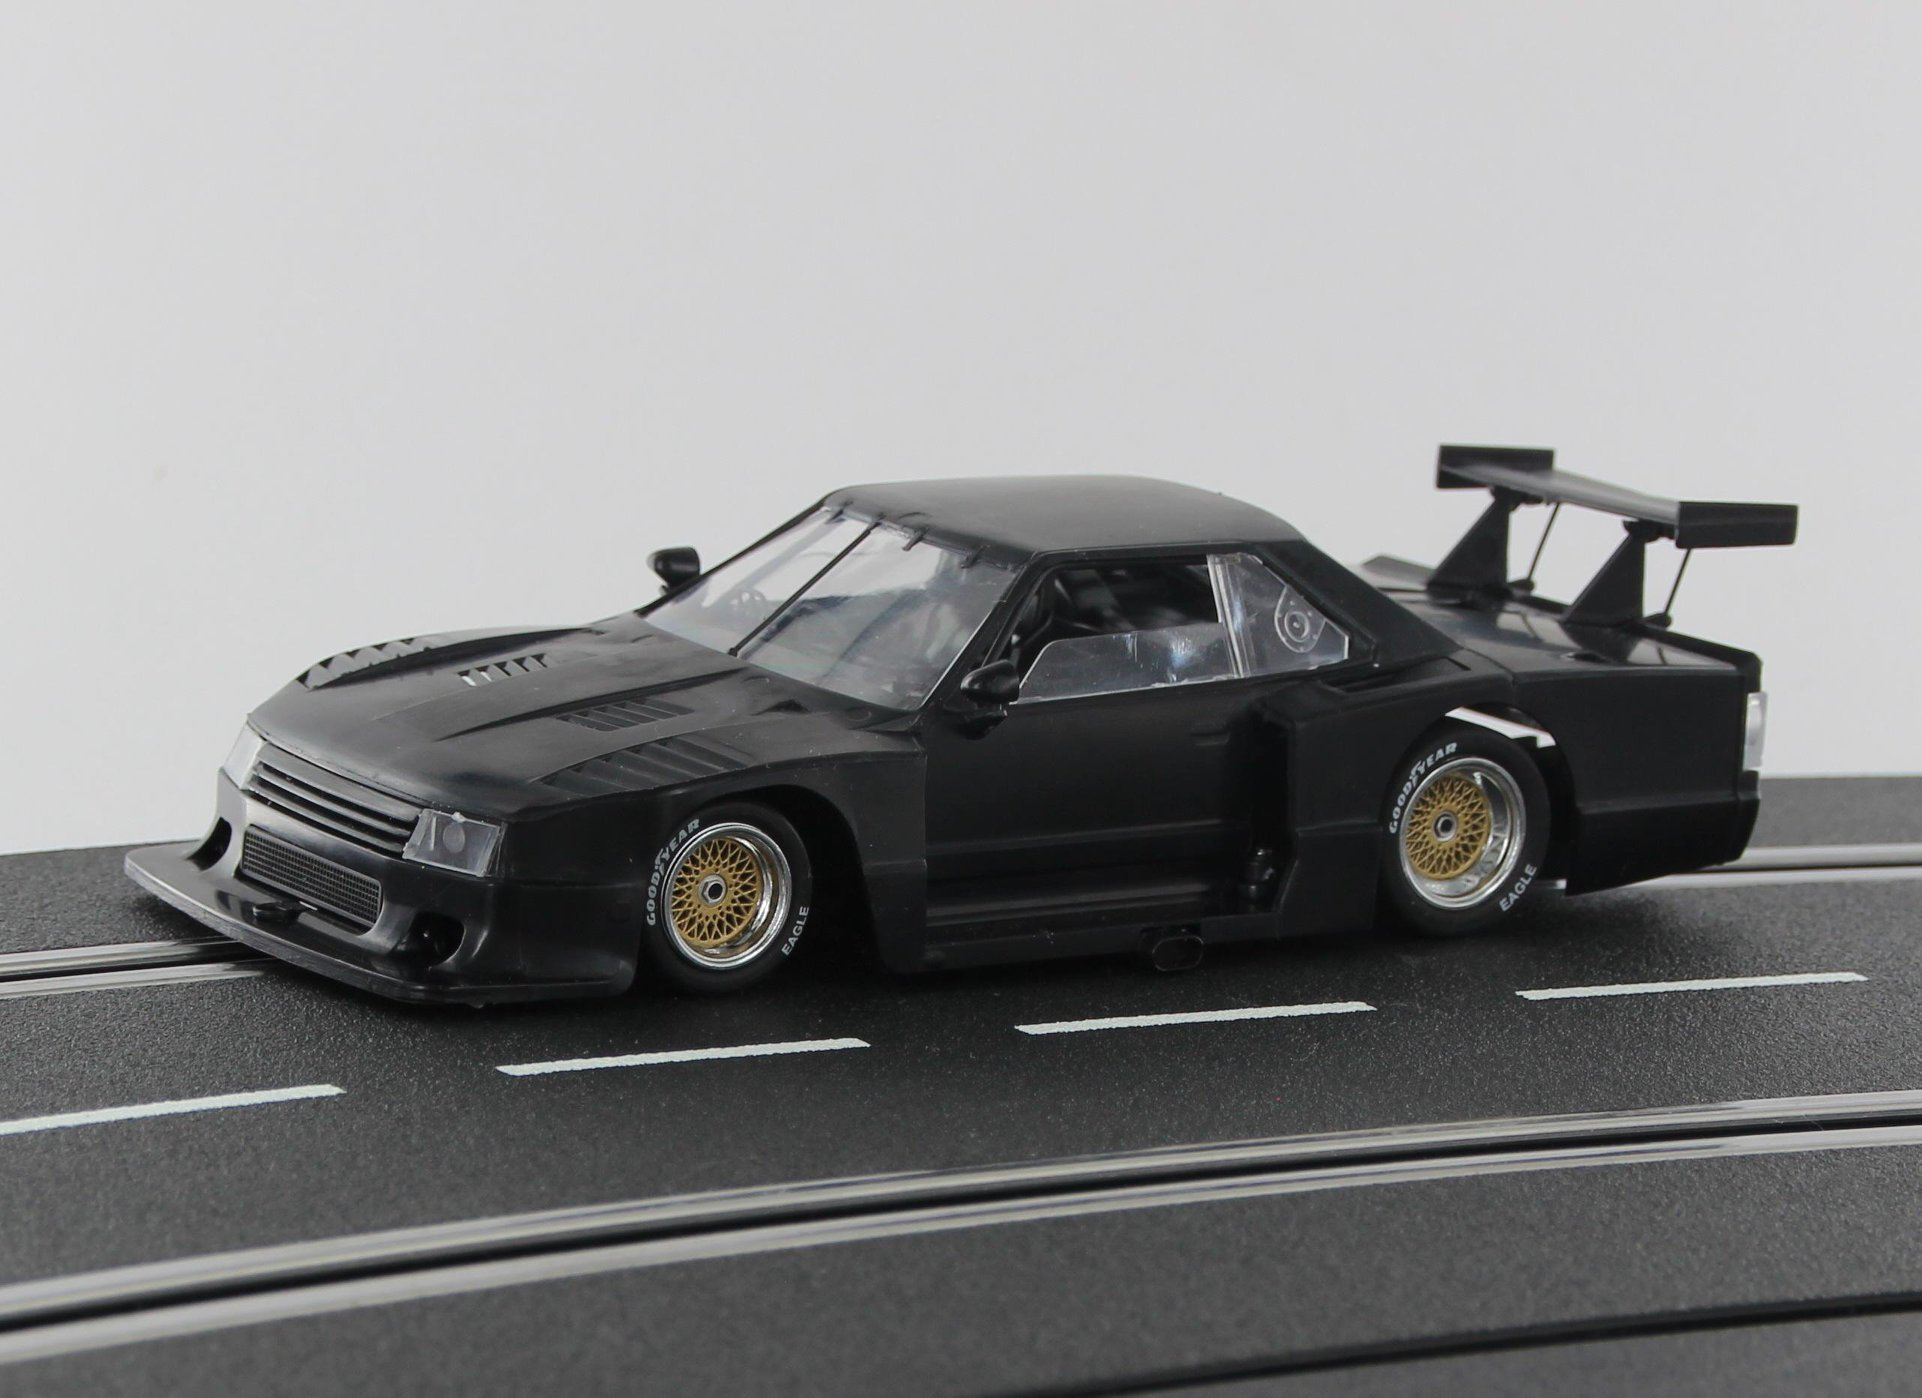 Sideways: Nissan Skyline Turbo Group 5